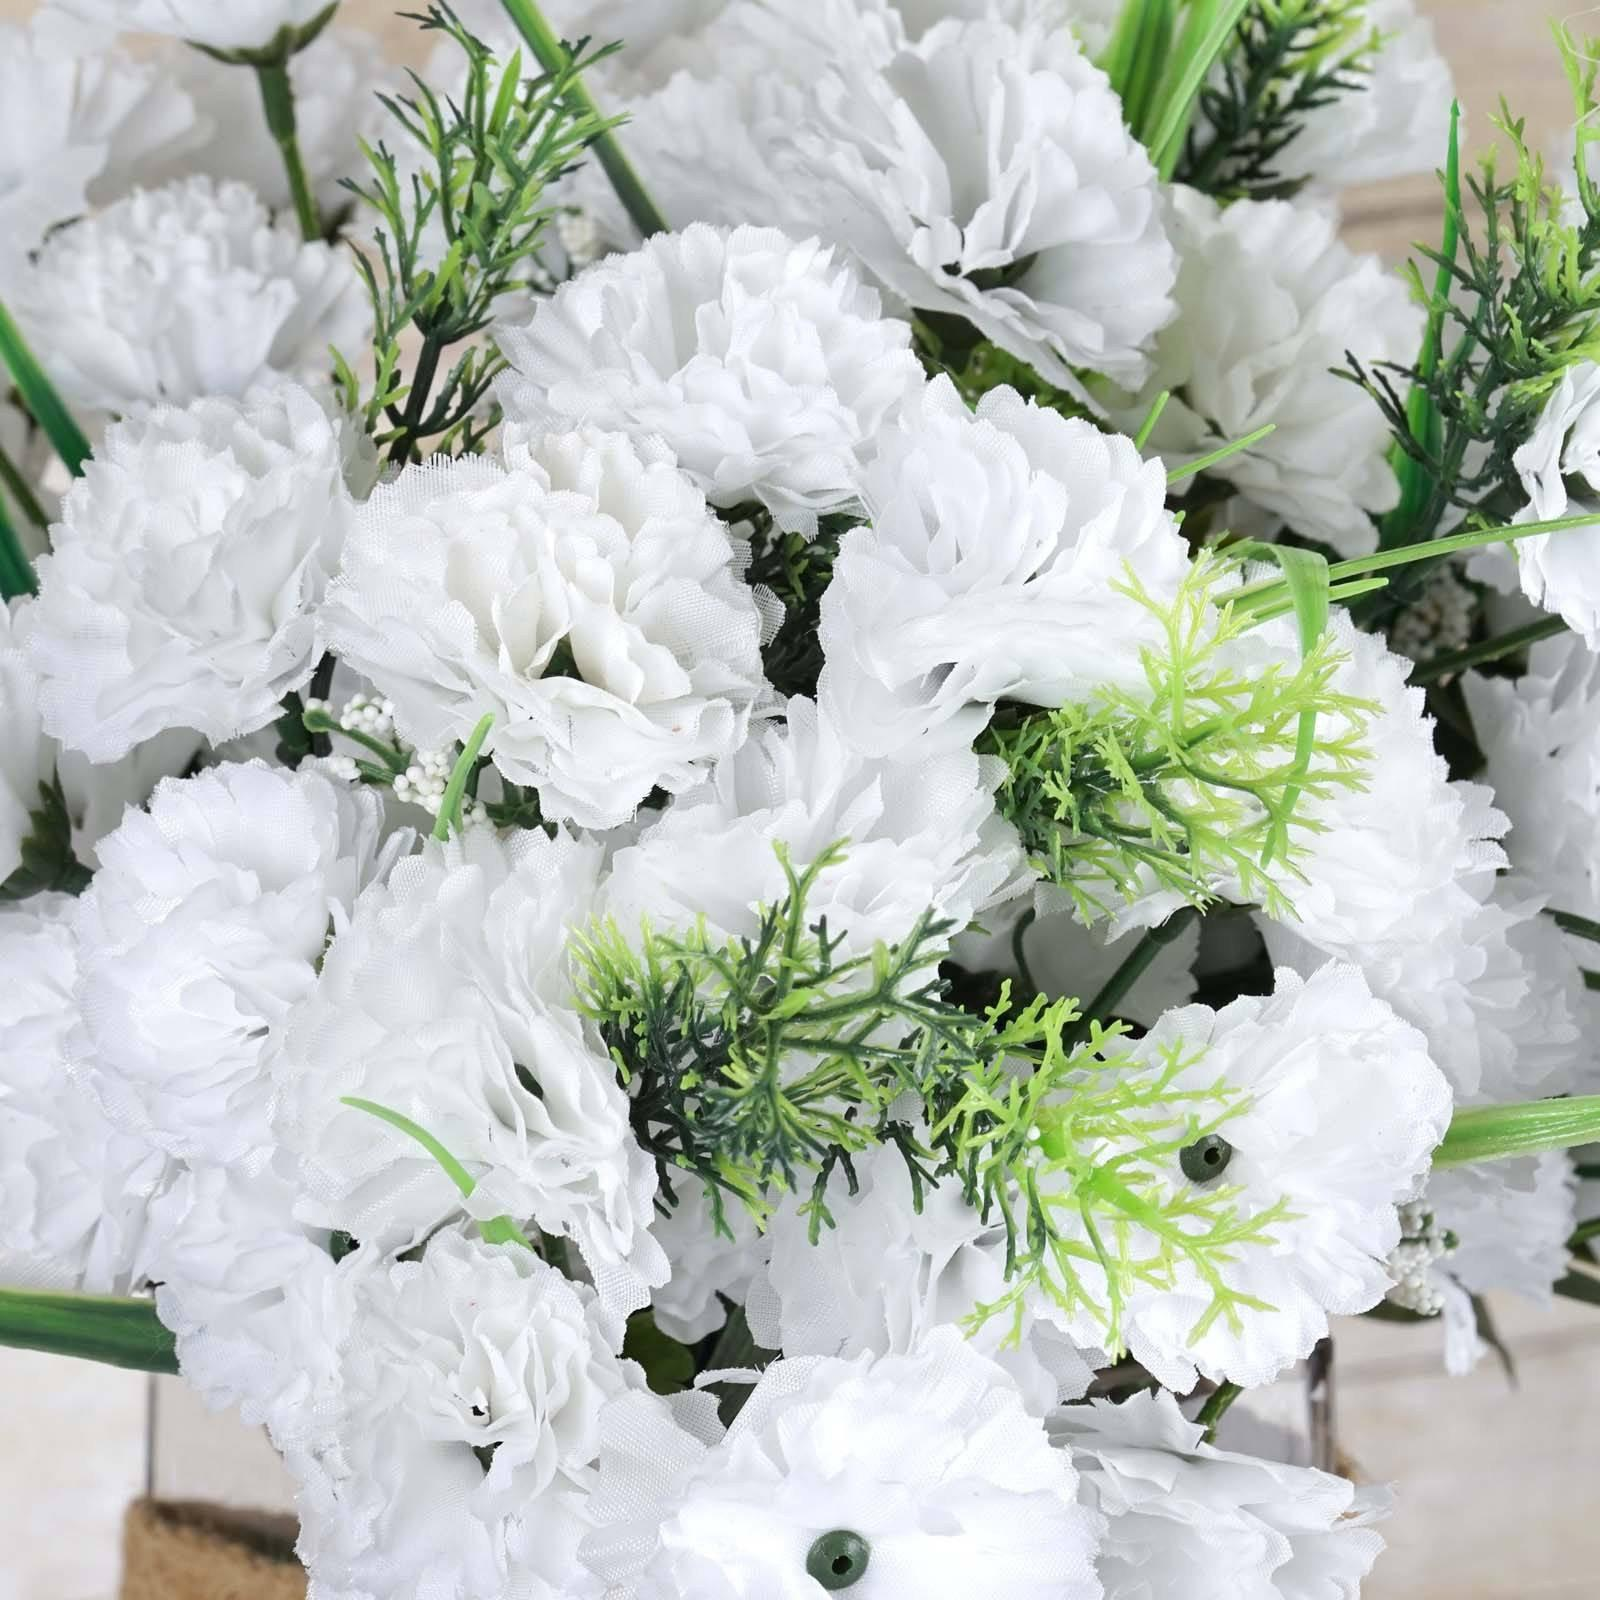 252 Wholesale Carnation Flowers Wedding Vase Centerpiece Decor ...